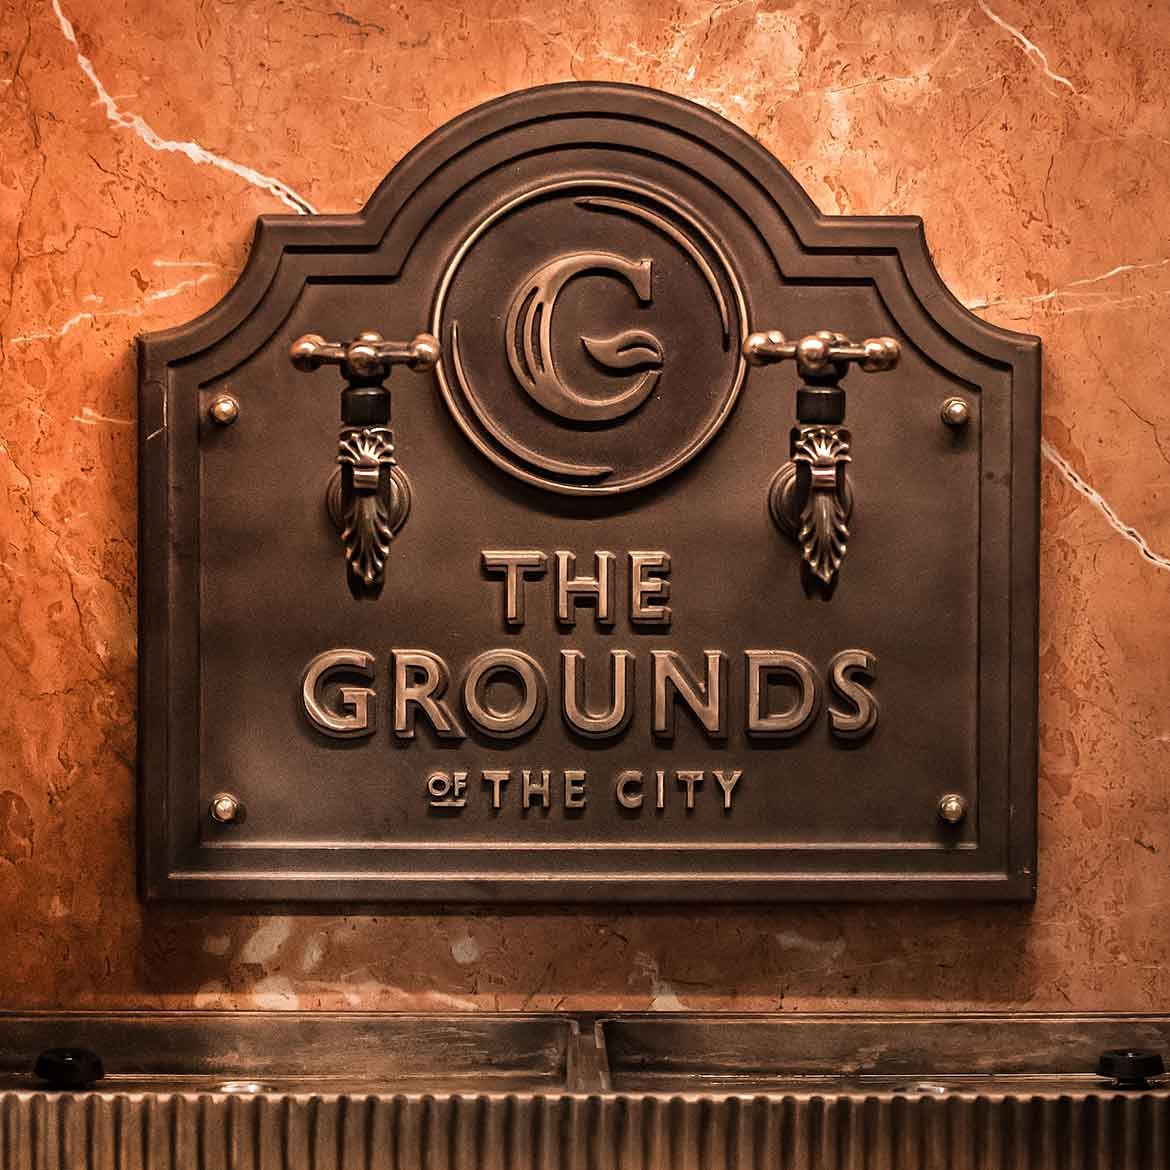 The Grounds of The City sign